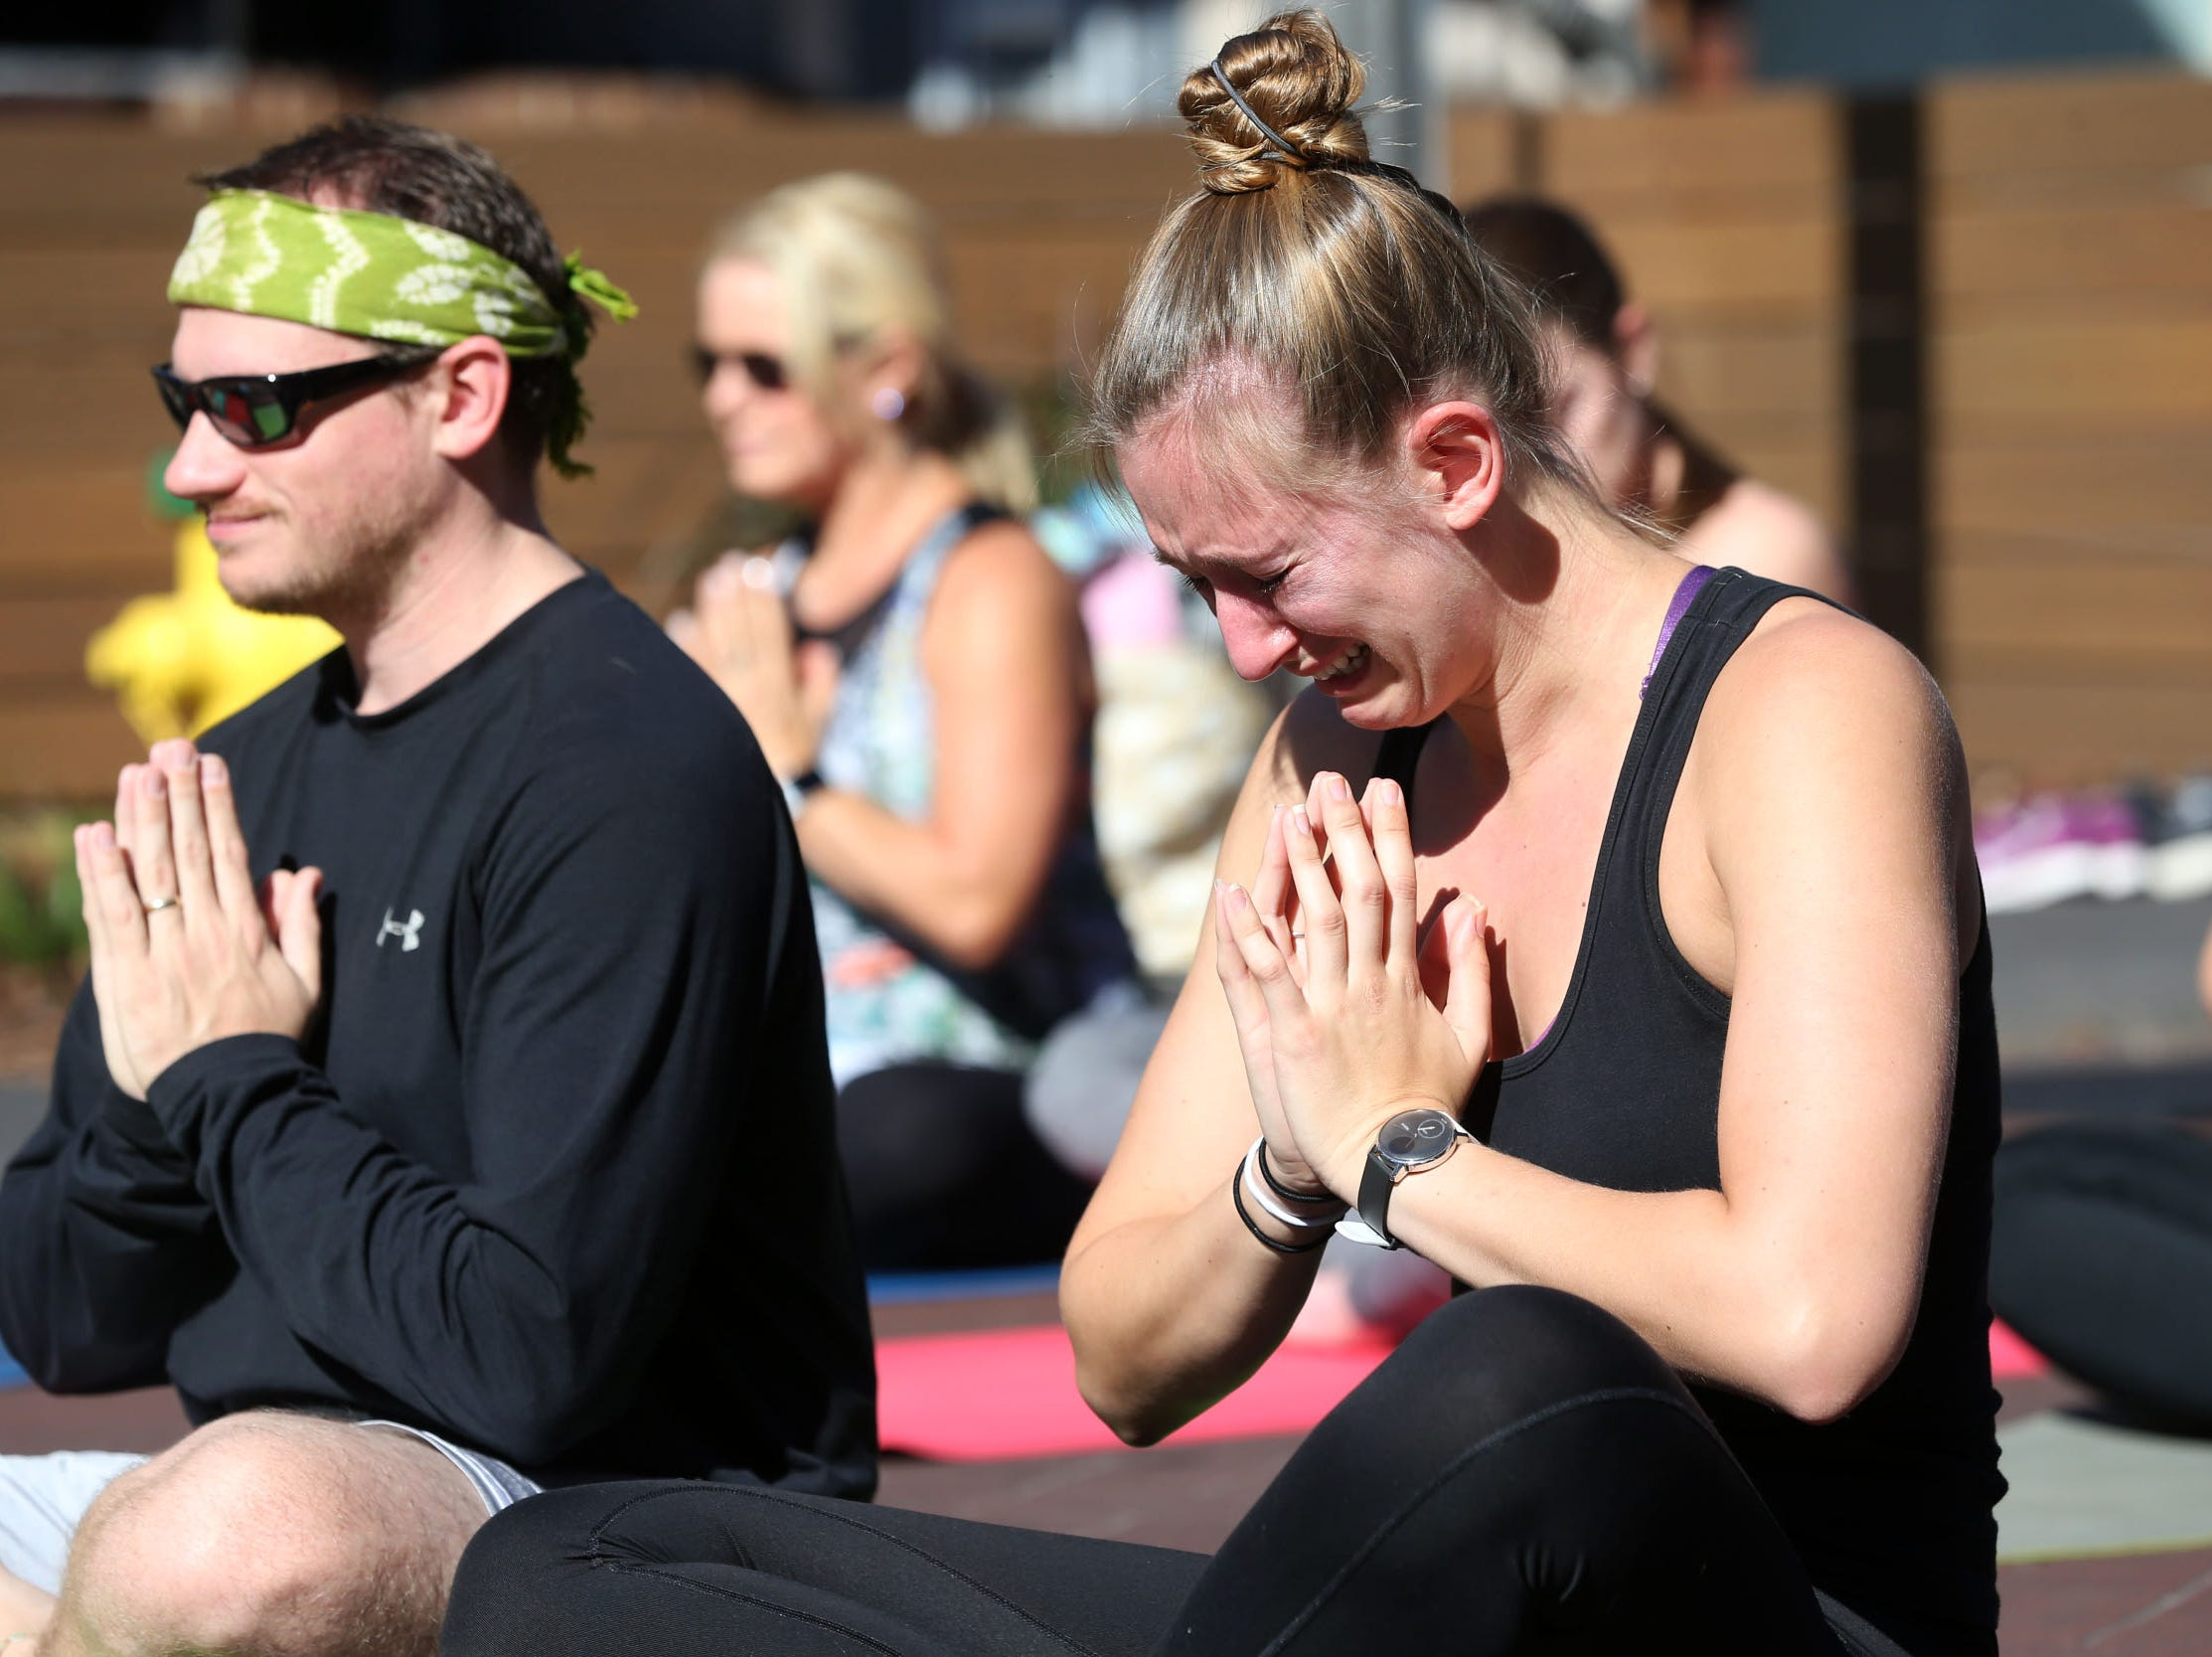 Yoga for a Cause, originally organized to help Hurricane Michael victims, becomes a community event to also create a sense of peace the day after the shooting that took place at Hot Yoga Tallahassee. The event was held on Adams St. on Saturday, Nov. 3, 2018. Two women were shot and killed at the yoga studio, Maura Binkley and Nancy Van Vessem.